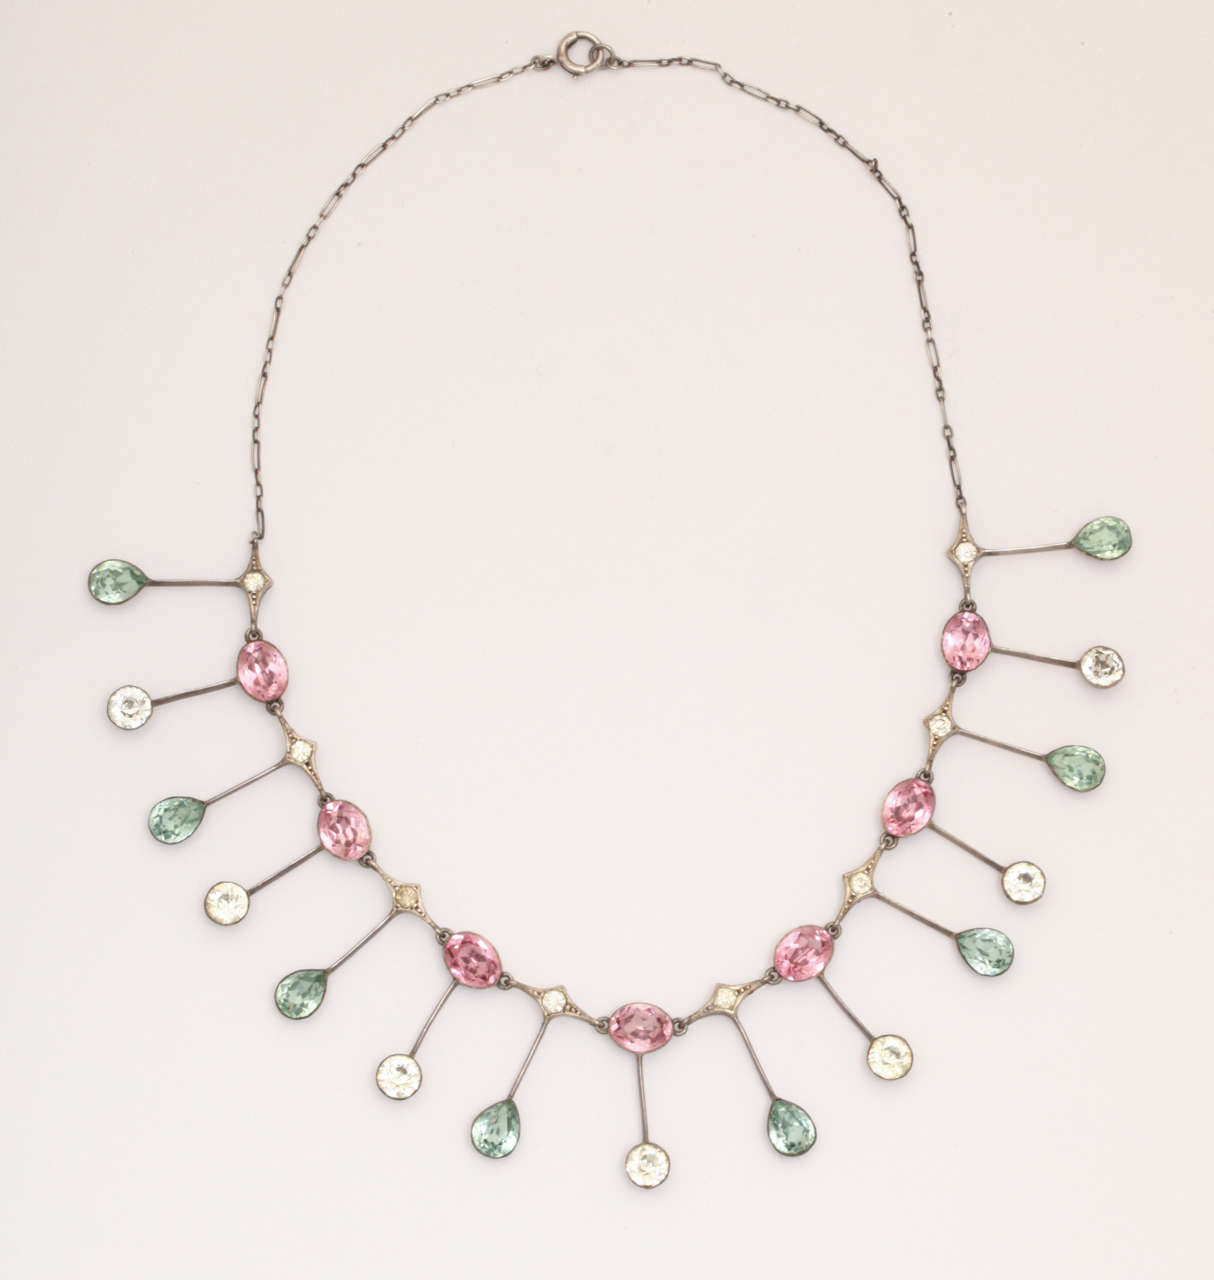 Striking Color Display in an Edwardian Paste Necklace 2